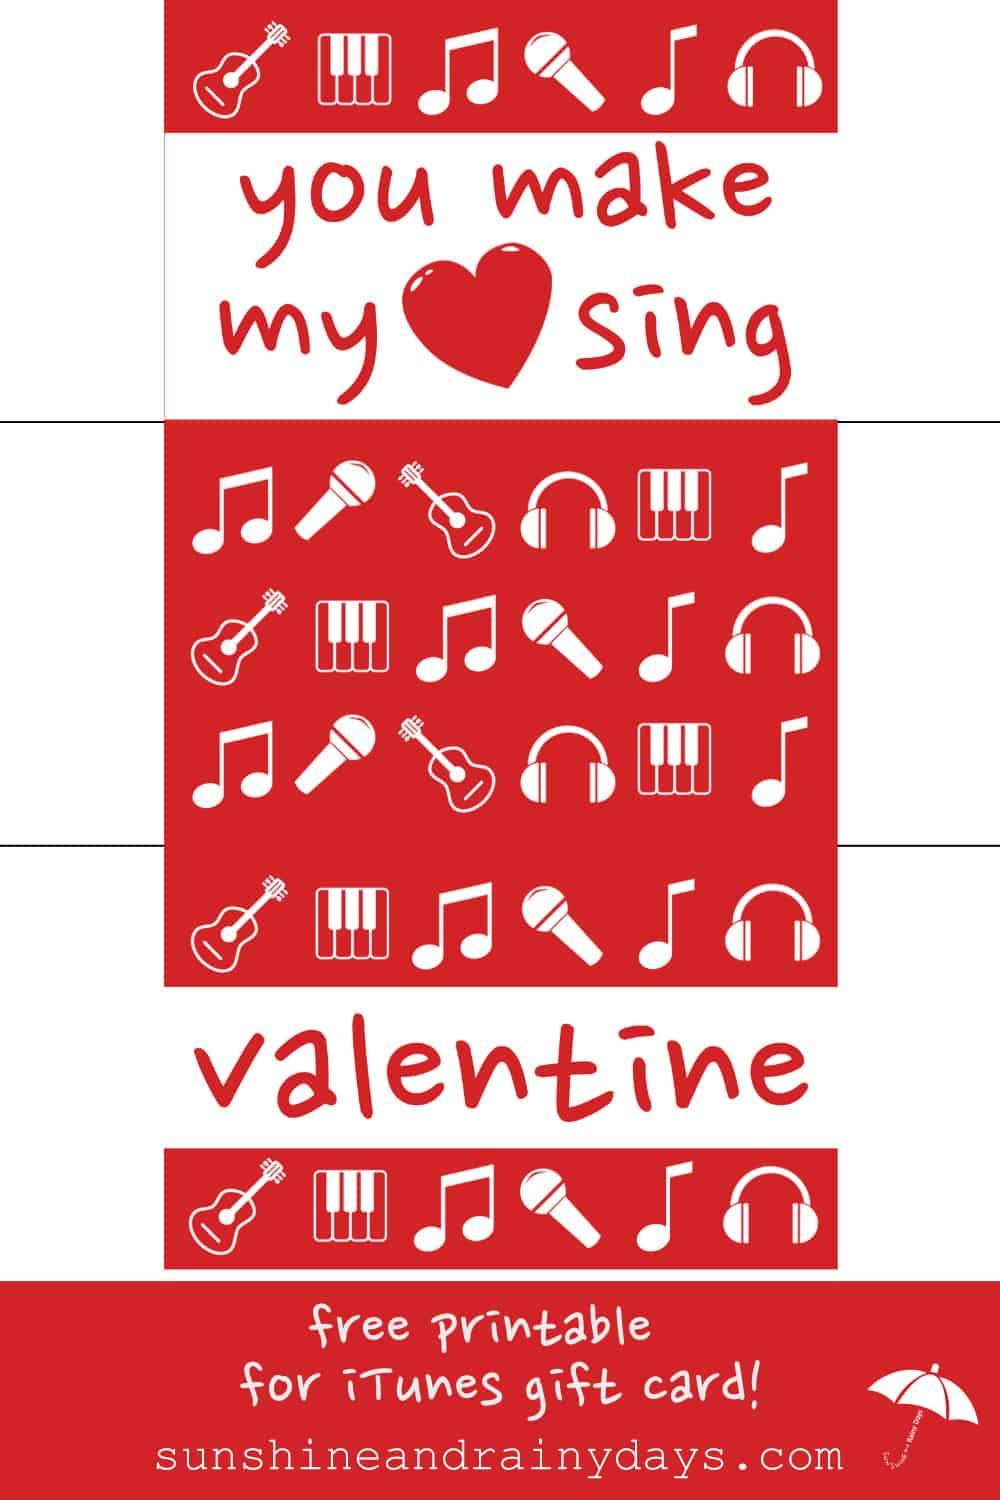 Are you giving the gift of music with an iTunes gift card this Valentine's Day? Throw it over the top with this Printable Valentine iTunes Gift Card Holder!